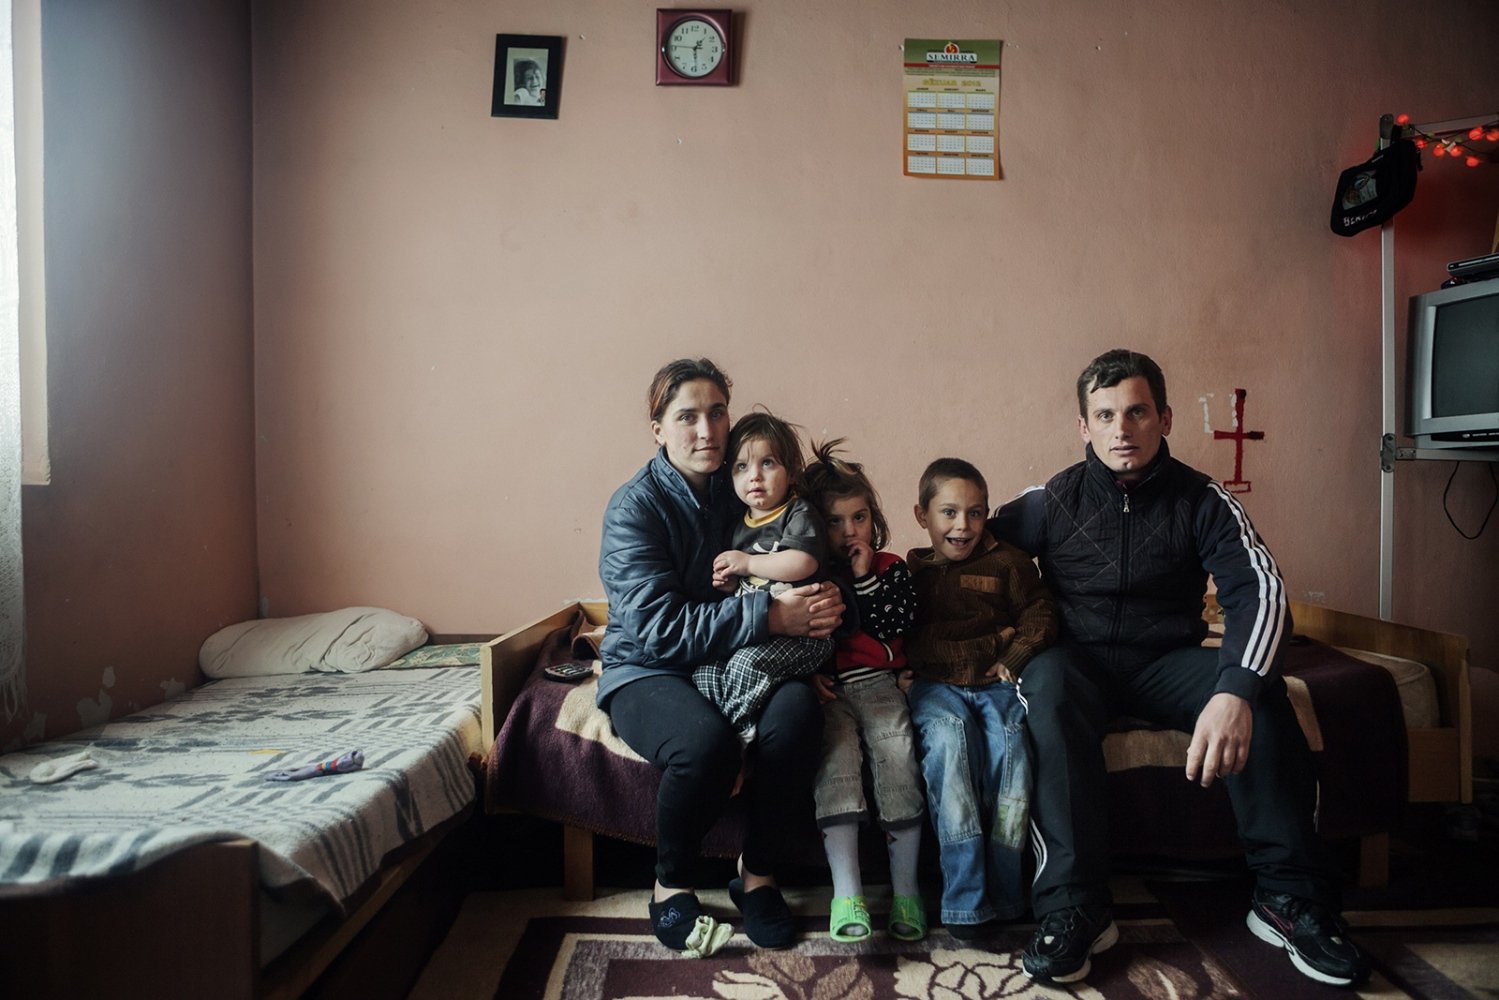 Kosova, Kline, 2012: Mark Coli is seen with his wife and 3 of his 5 sons. Mark lives in a little village near Kline and he is unemployed.